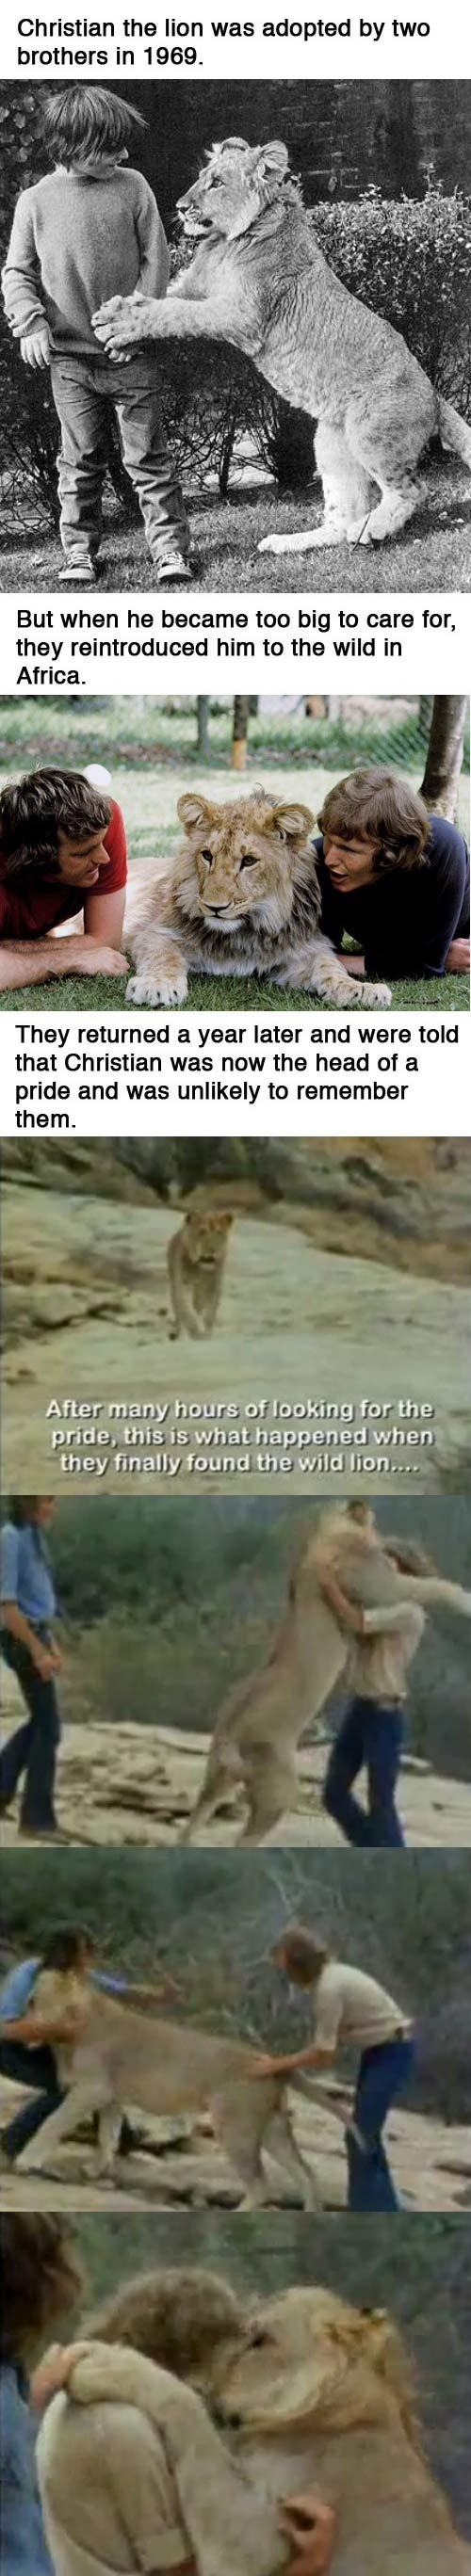 """Christian the Lion"". >Hope everyone has a great night and thanks for everything... At least it wasn't not felicity"